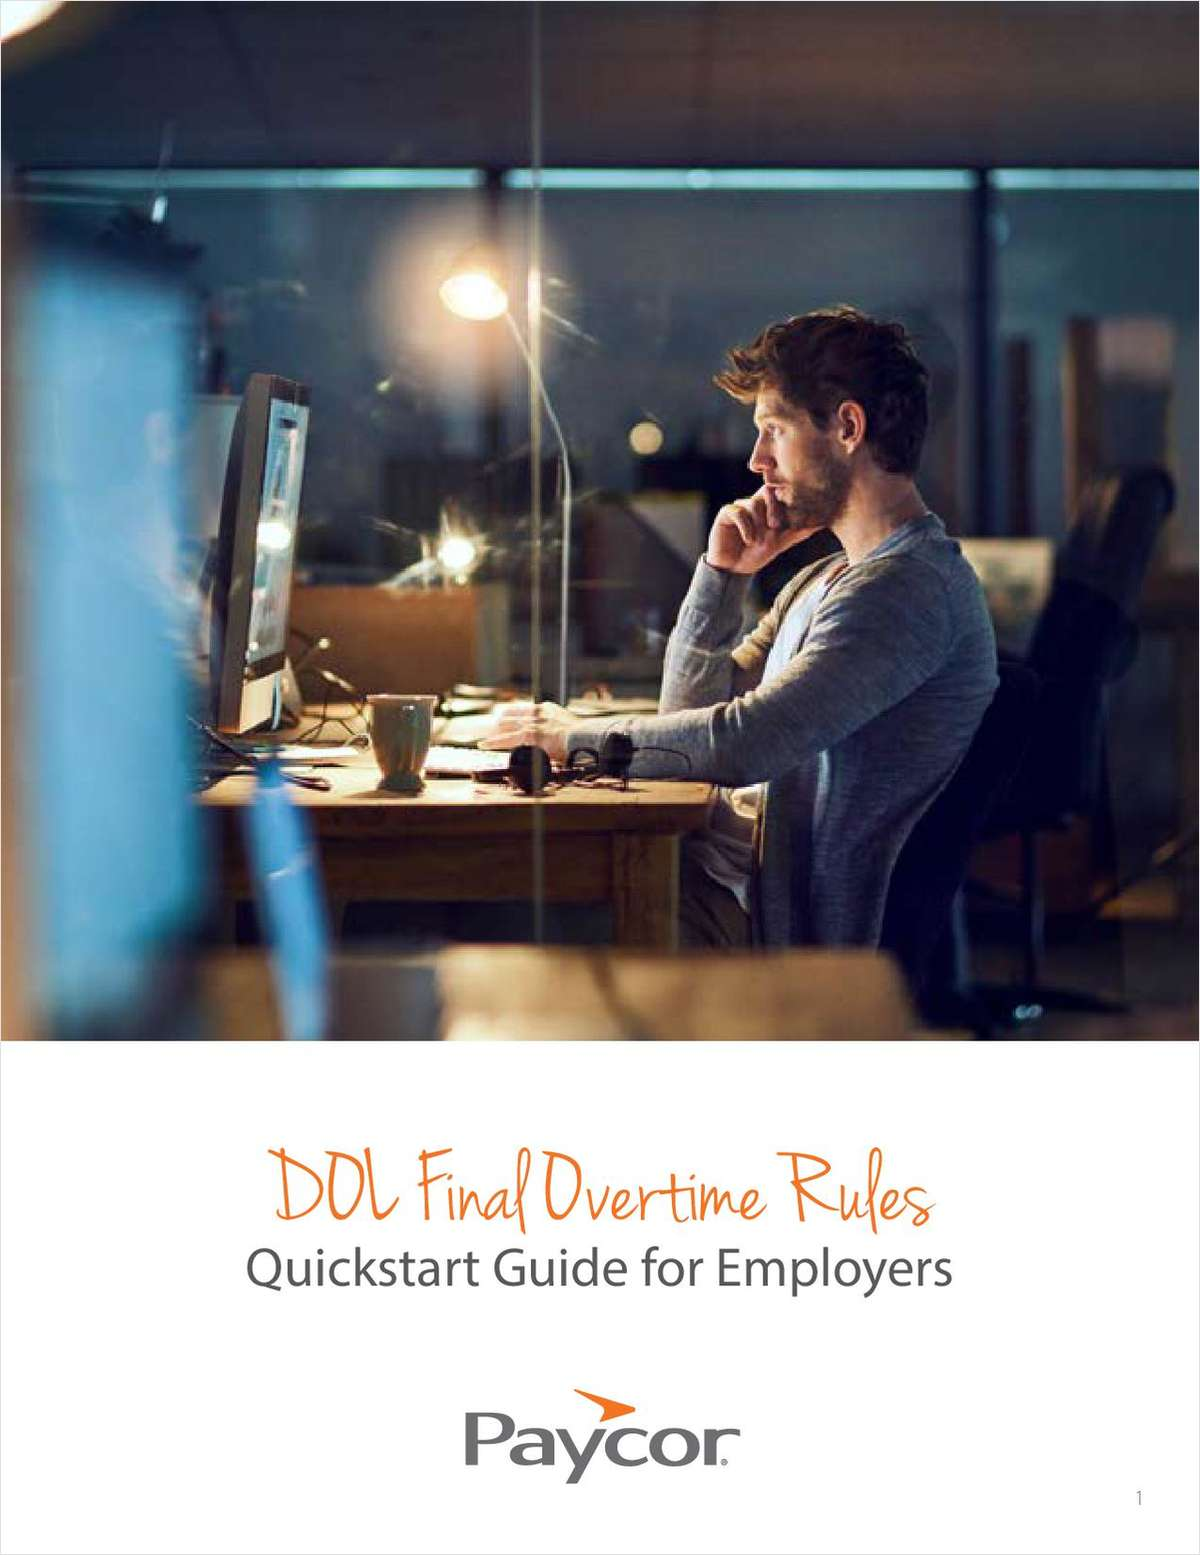 New Overtime Rules Take Effect 1/1/2020. Are You Prepared?